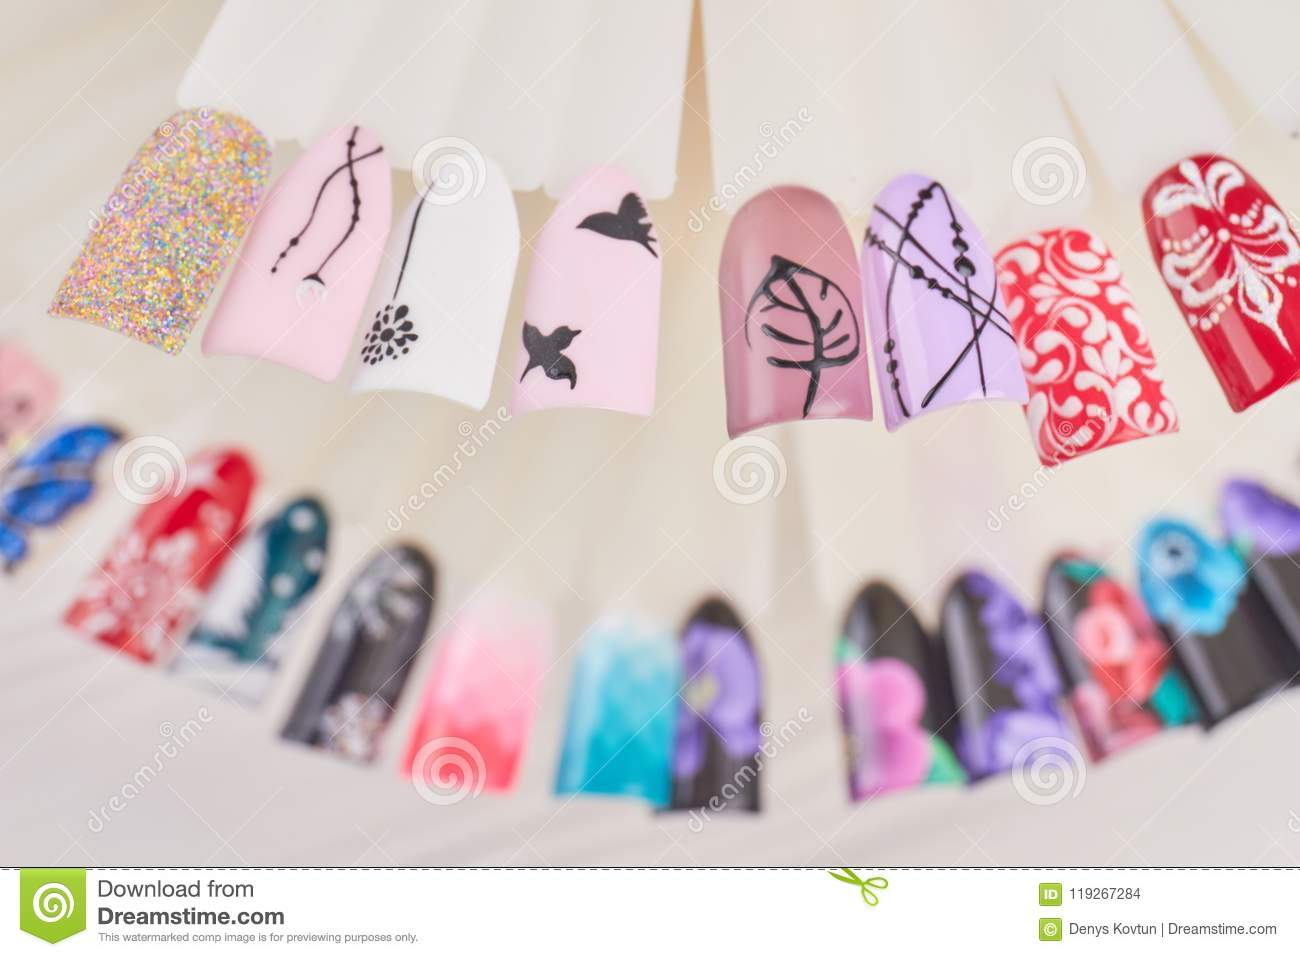 Fashion Nails Art Design Samples Stock Photo Image Of Collection